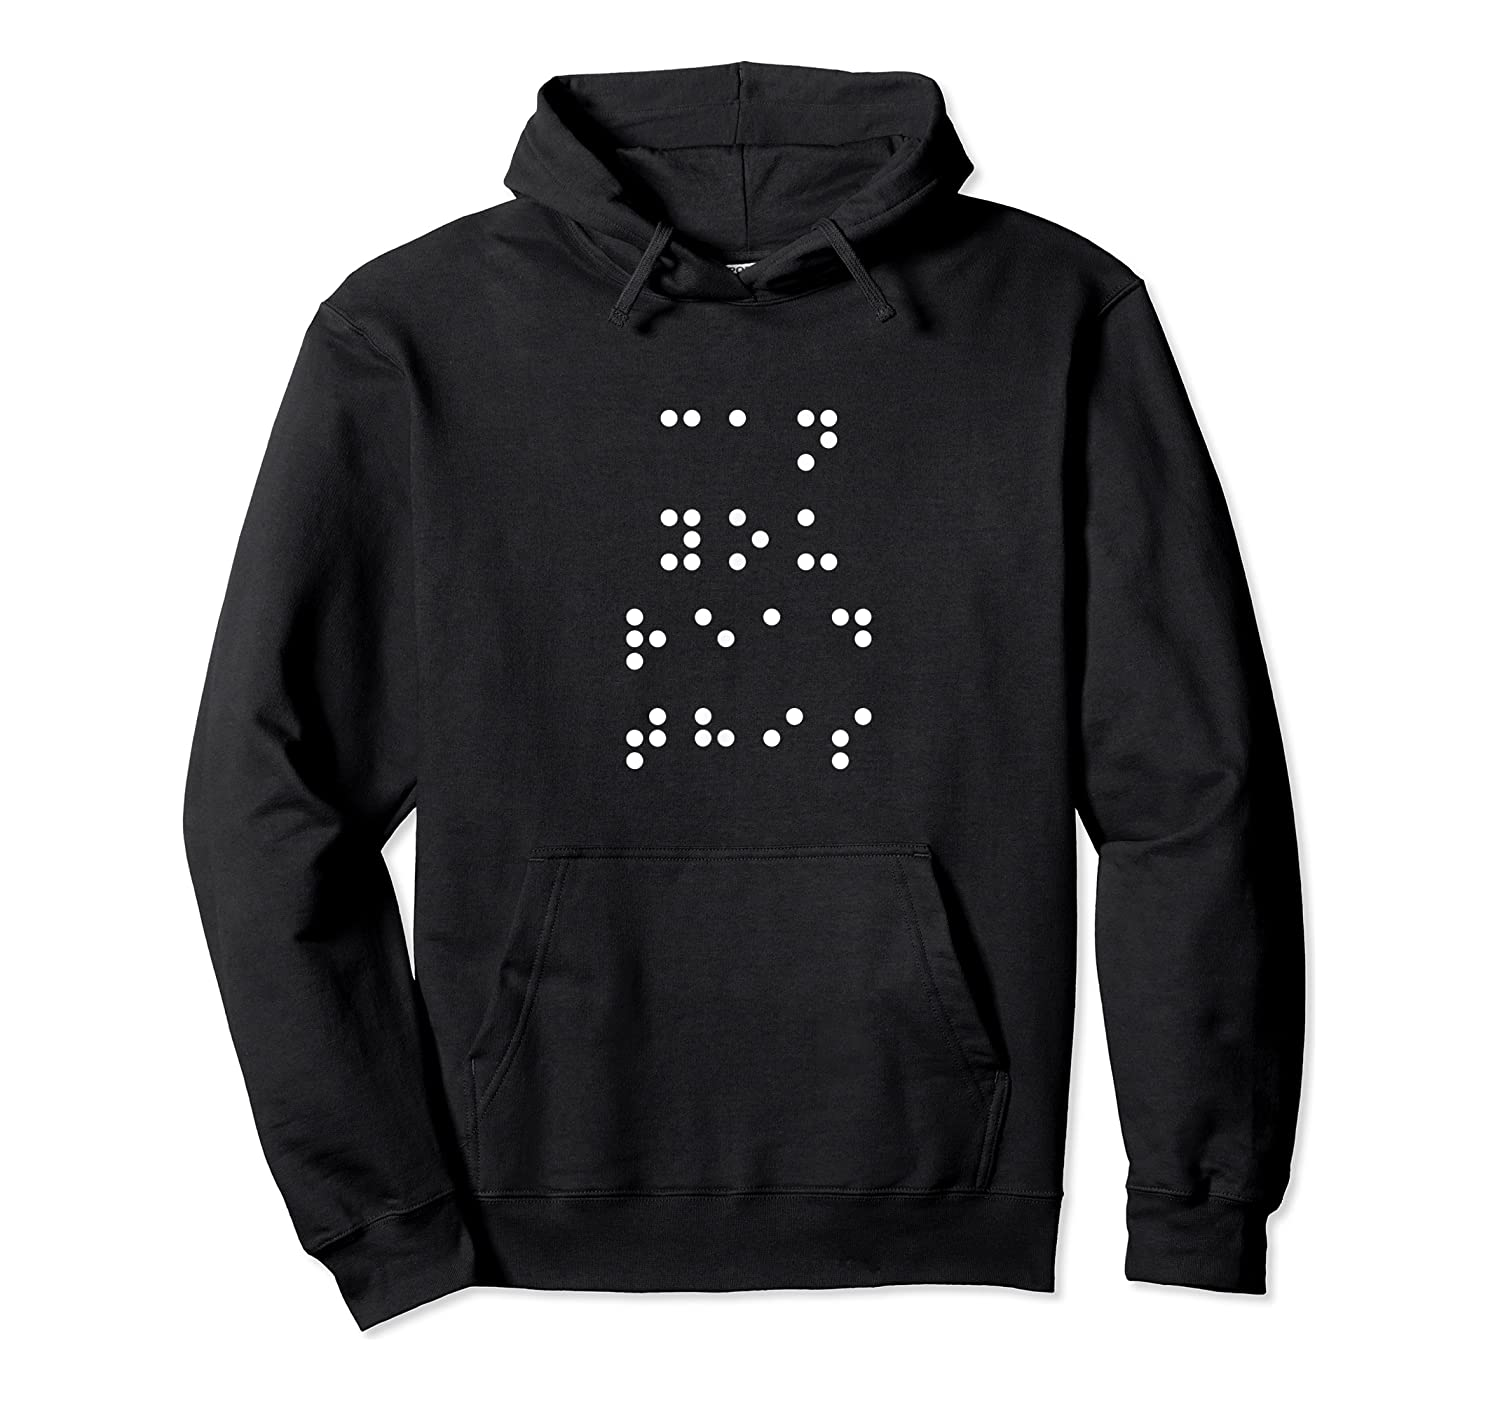 Can You Read This Braille Blind Read Write Tea Shirt Unisex Pullover Hoodie